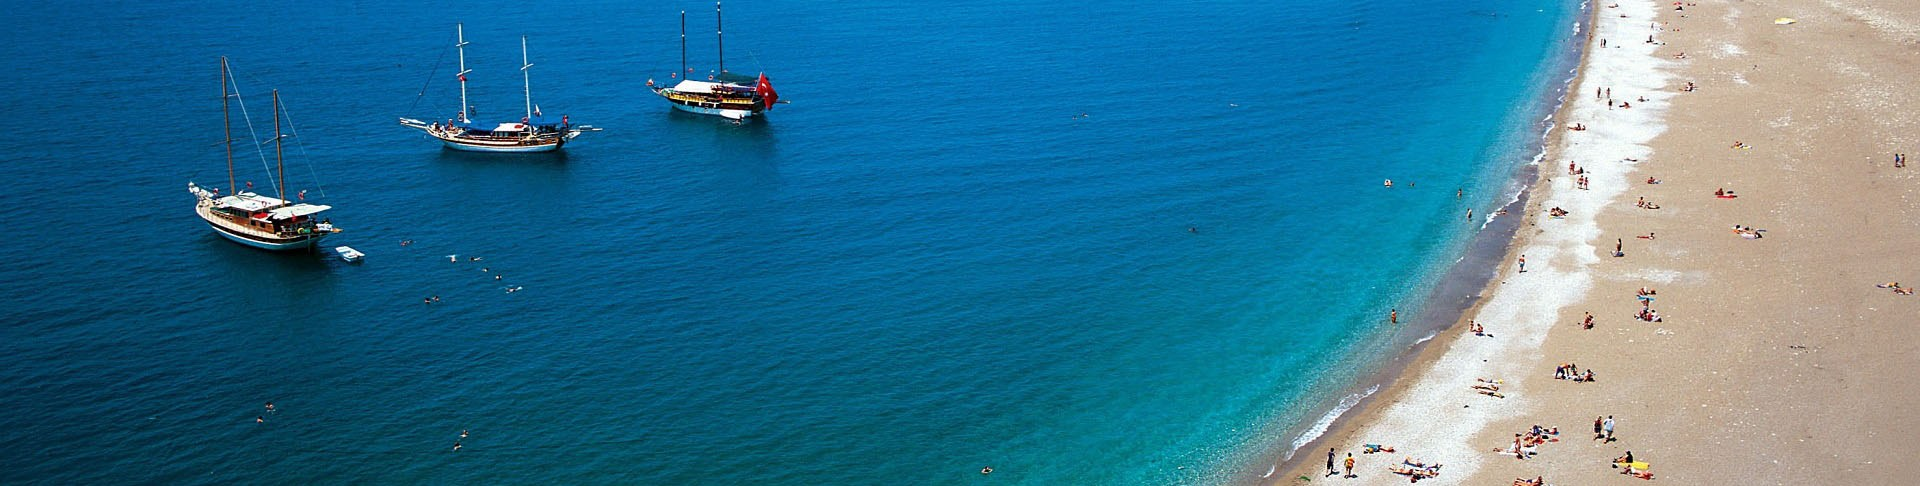 All Hotels & Regions of Antalya